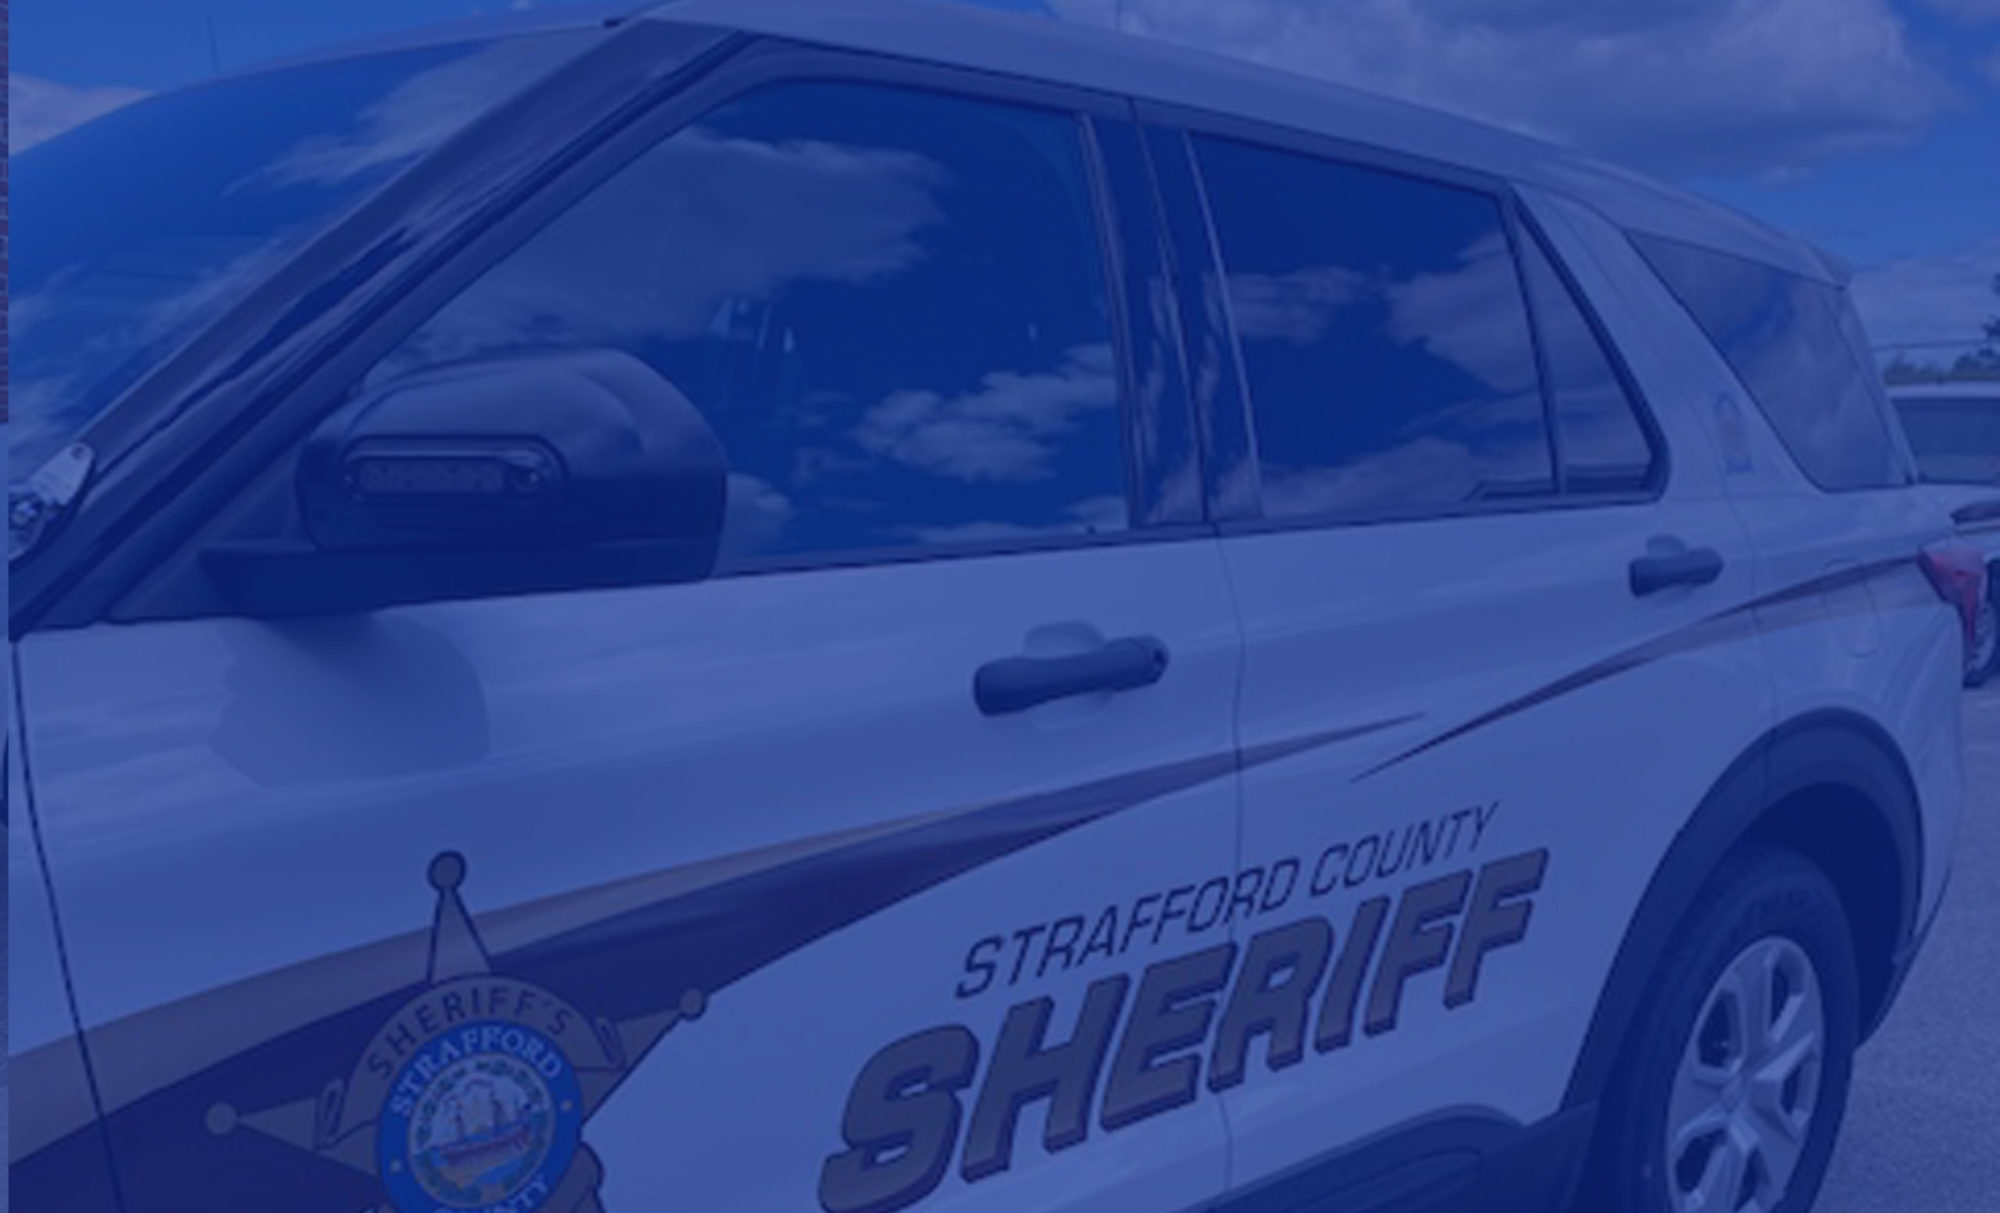 Strafford County Sheriff's Office